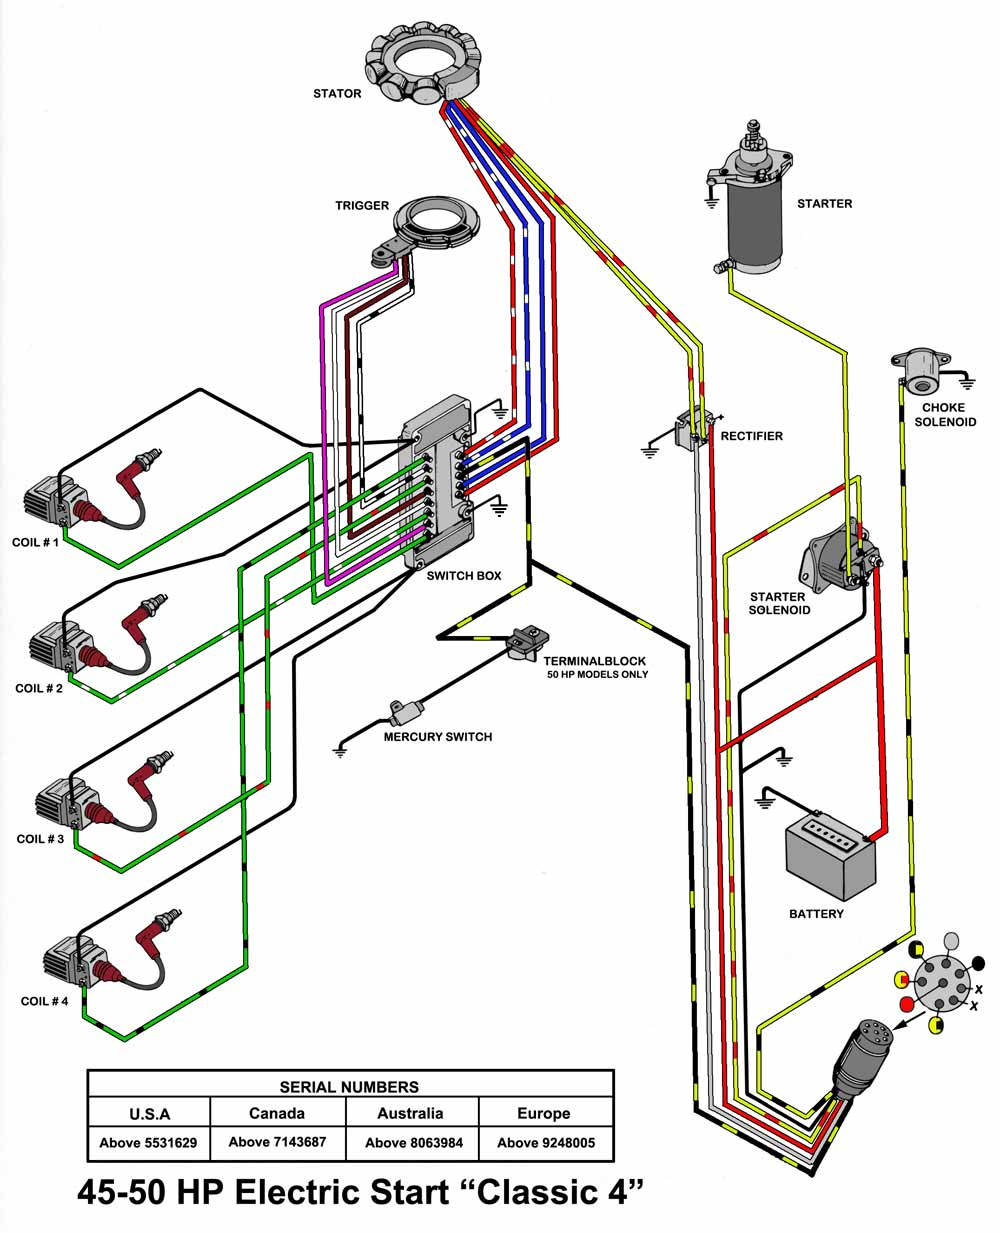 17186 125 hp mercury outboard wiring diagram | wiring resources  wiring resources